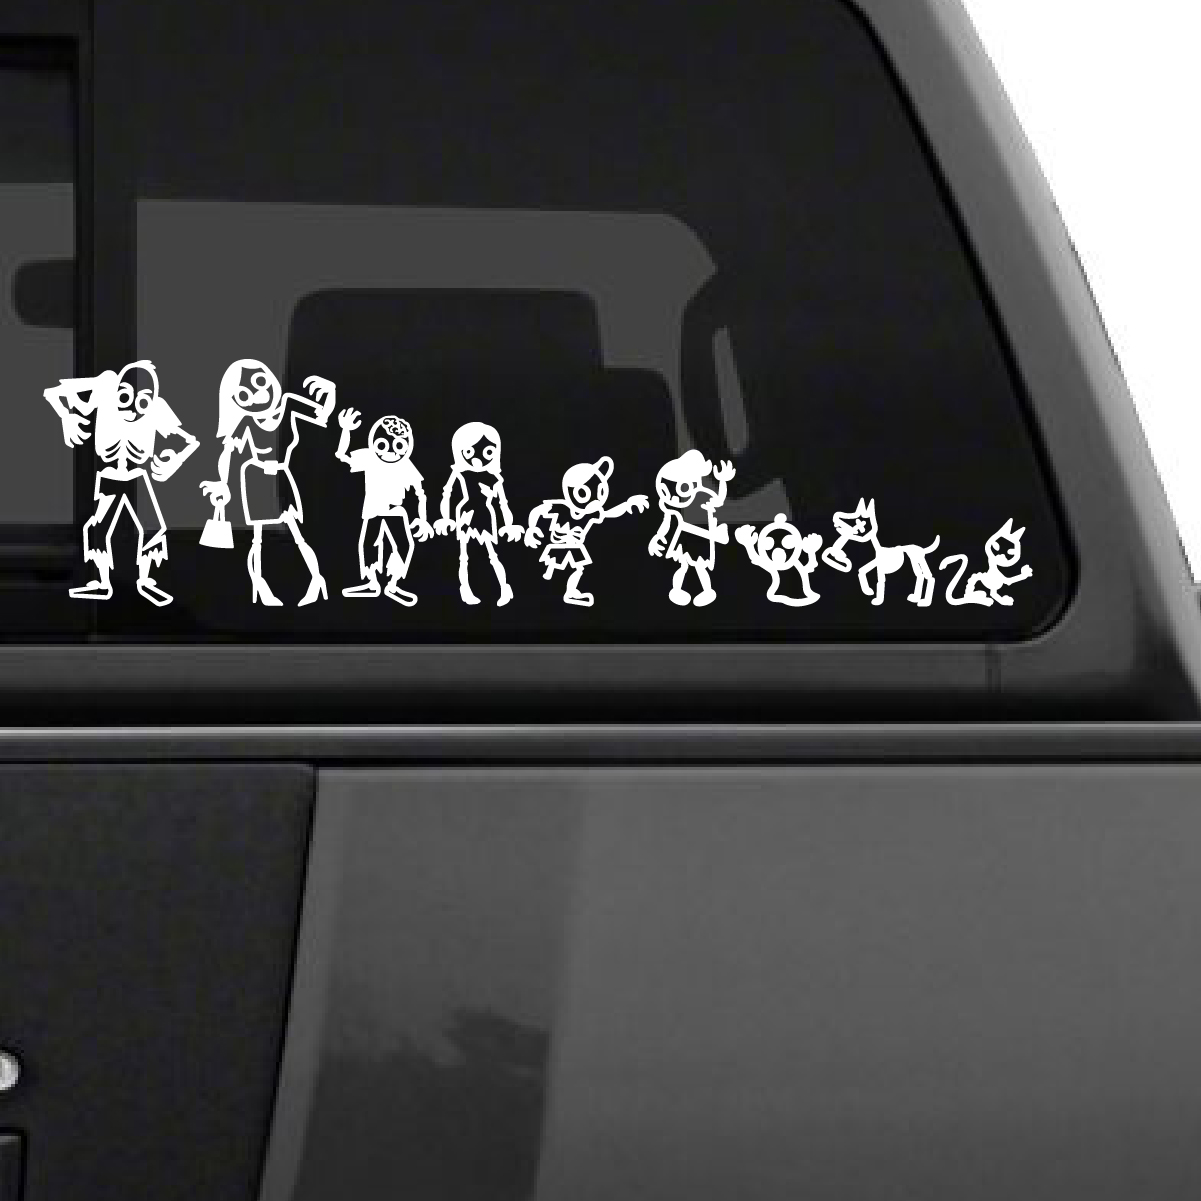 Zombie Stick Figure Family Car Decal The Decal Guru - Sporting car decals